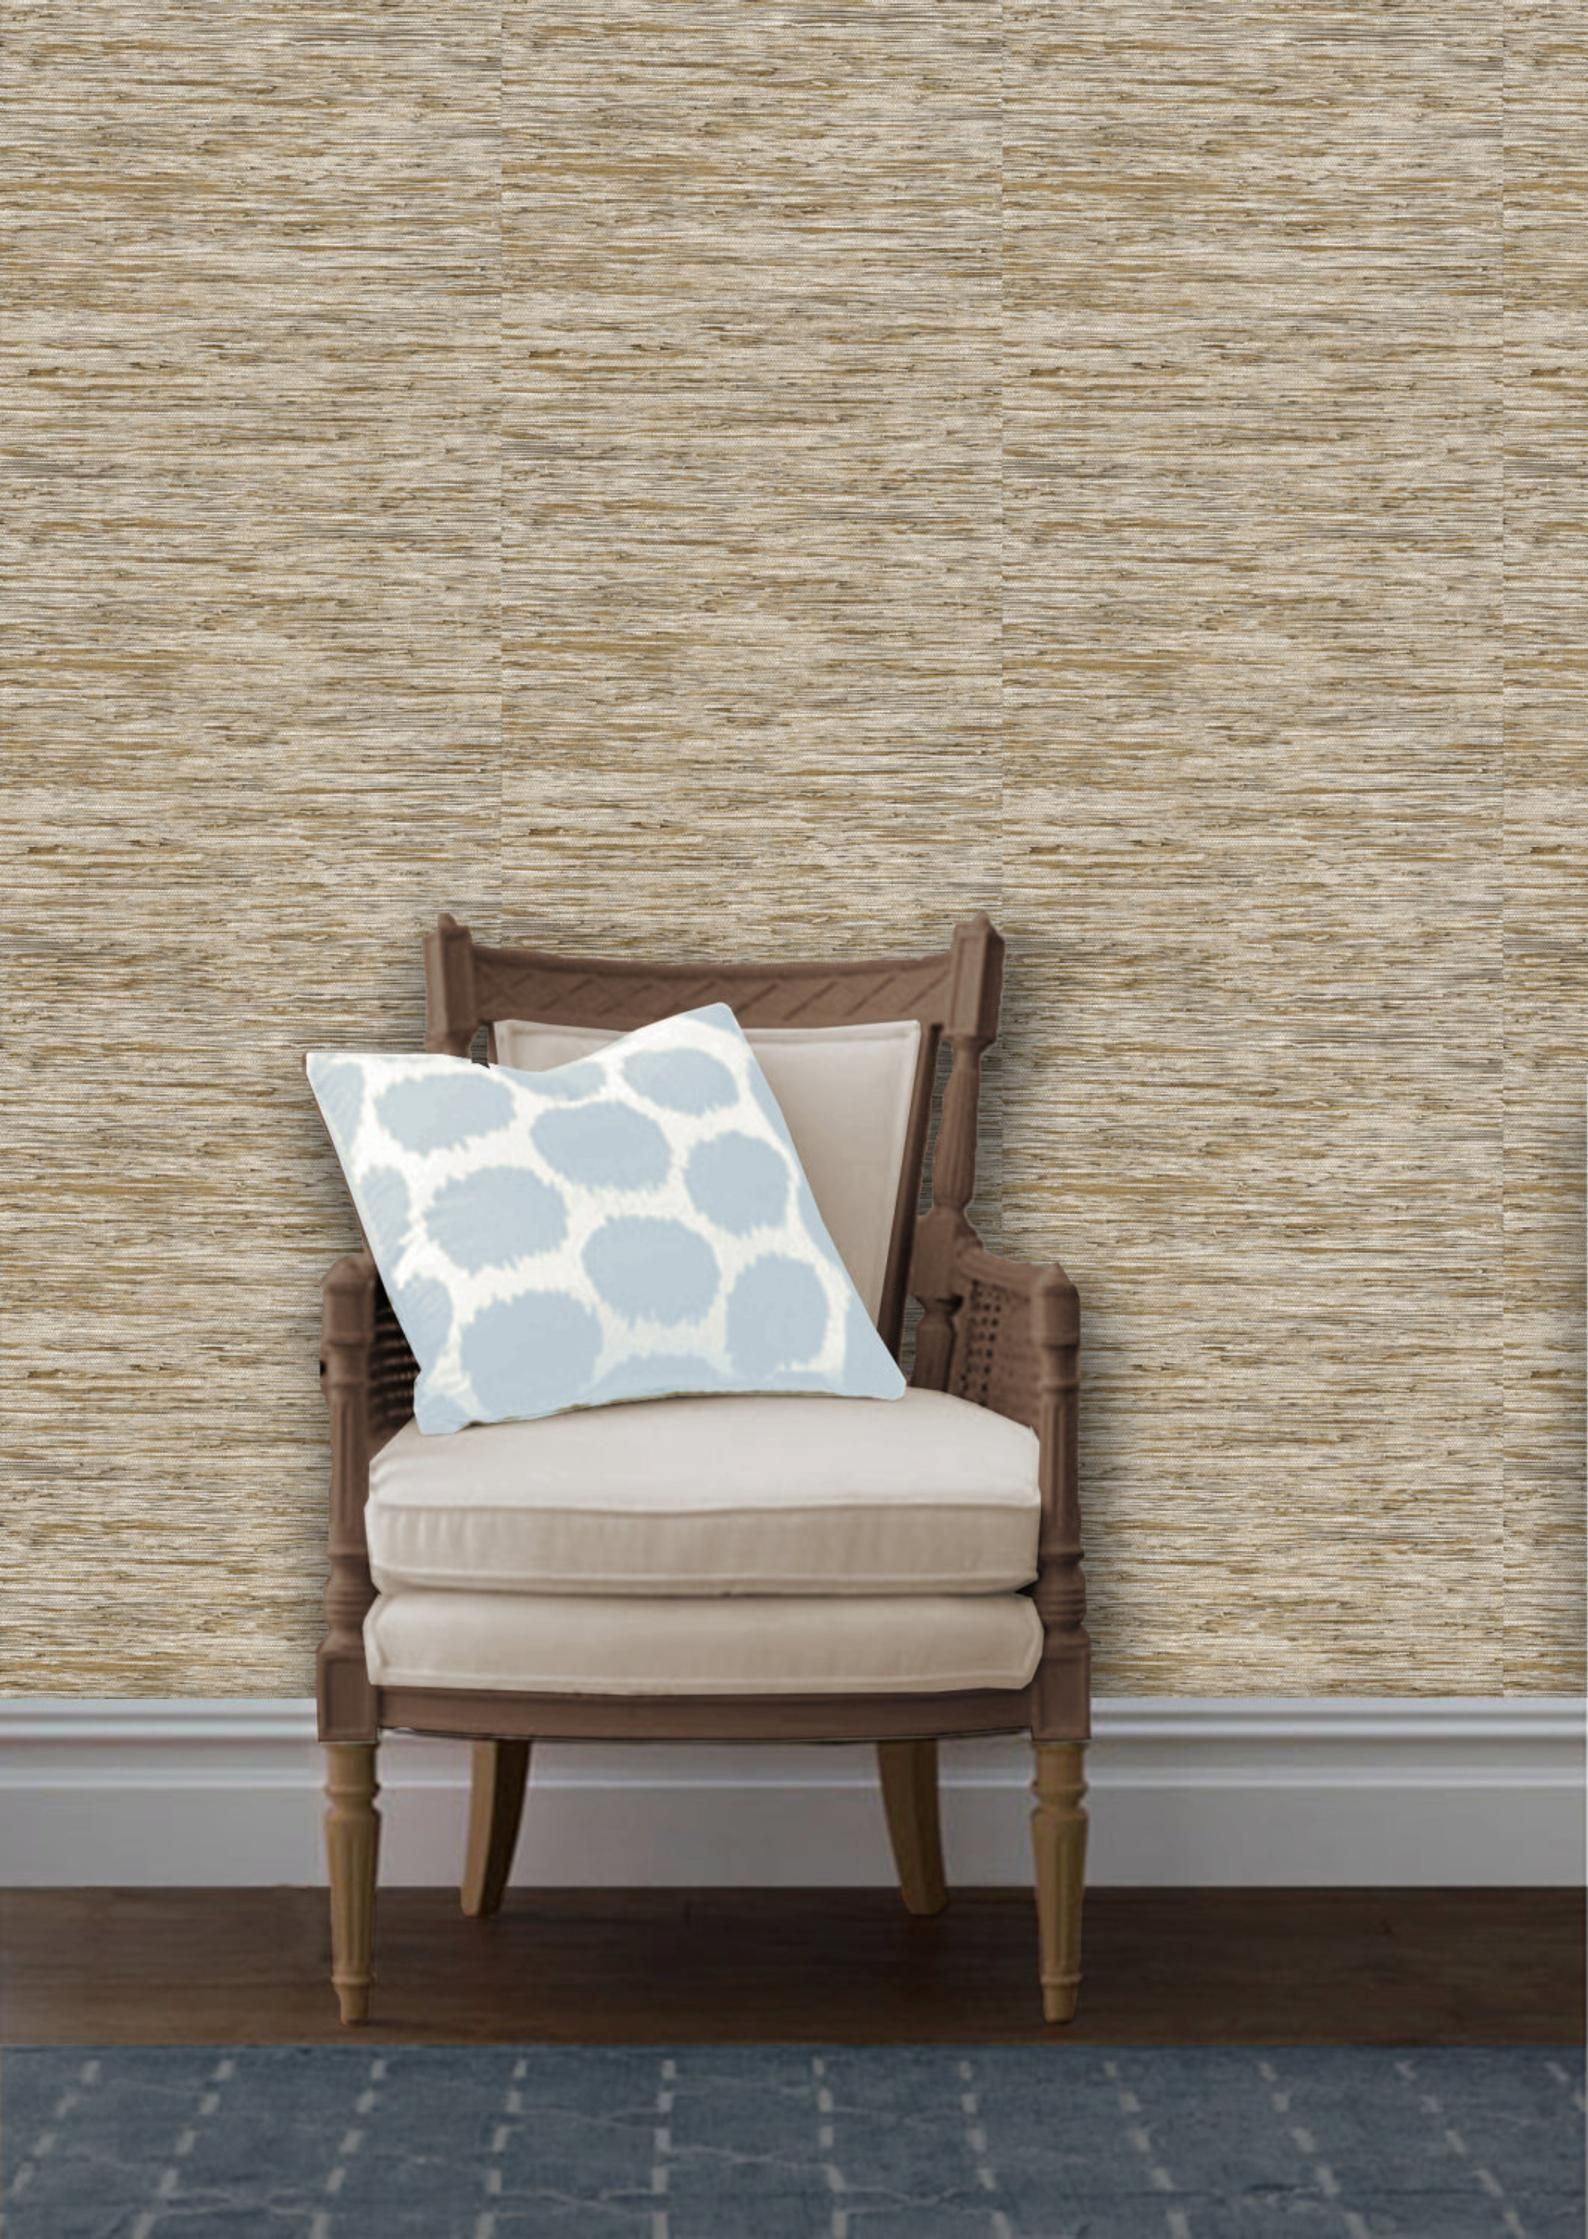 Faux Grasscloth Easy to Apply Removable Peel 'n Stick